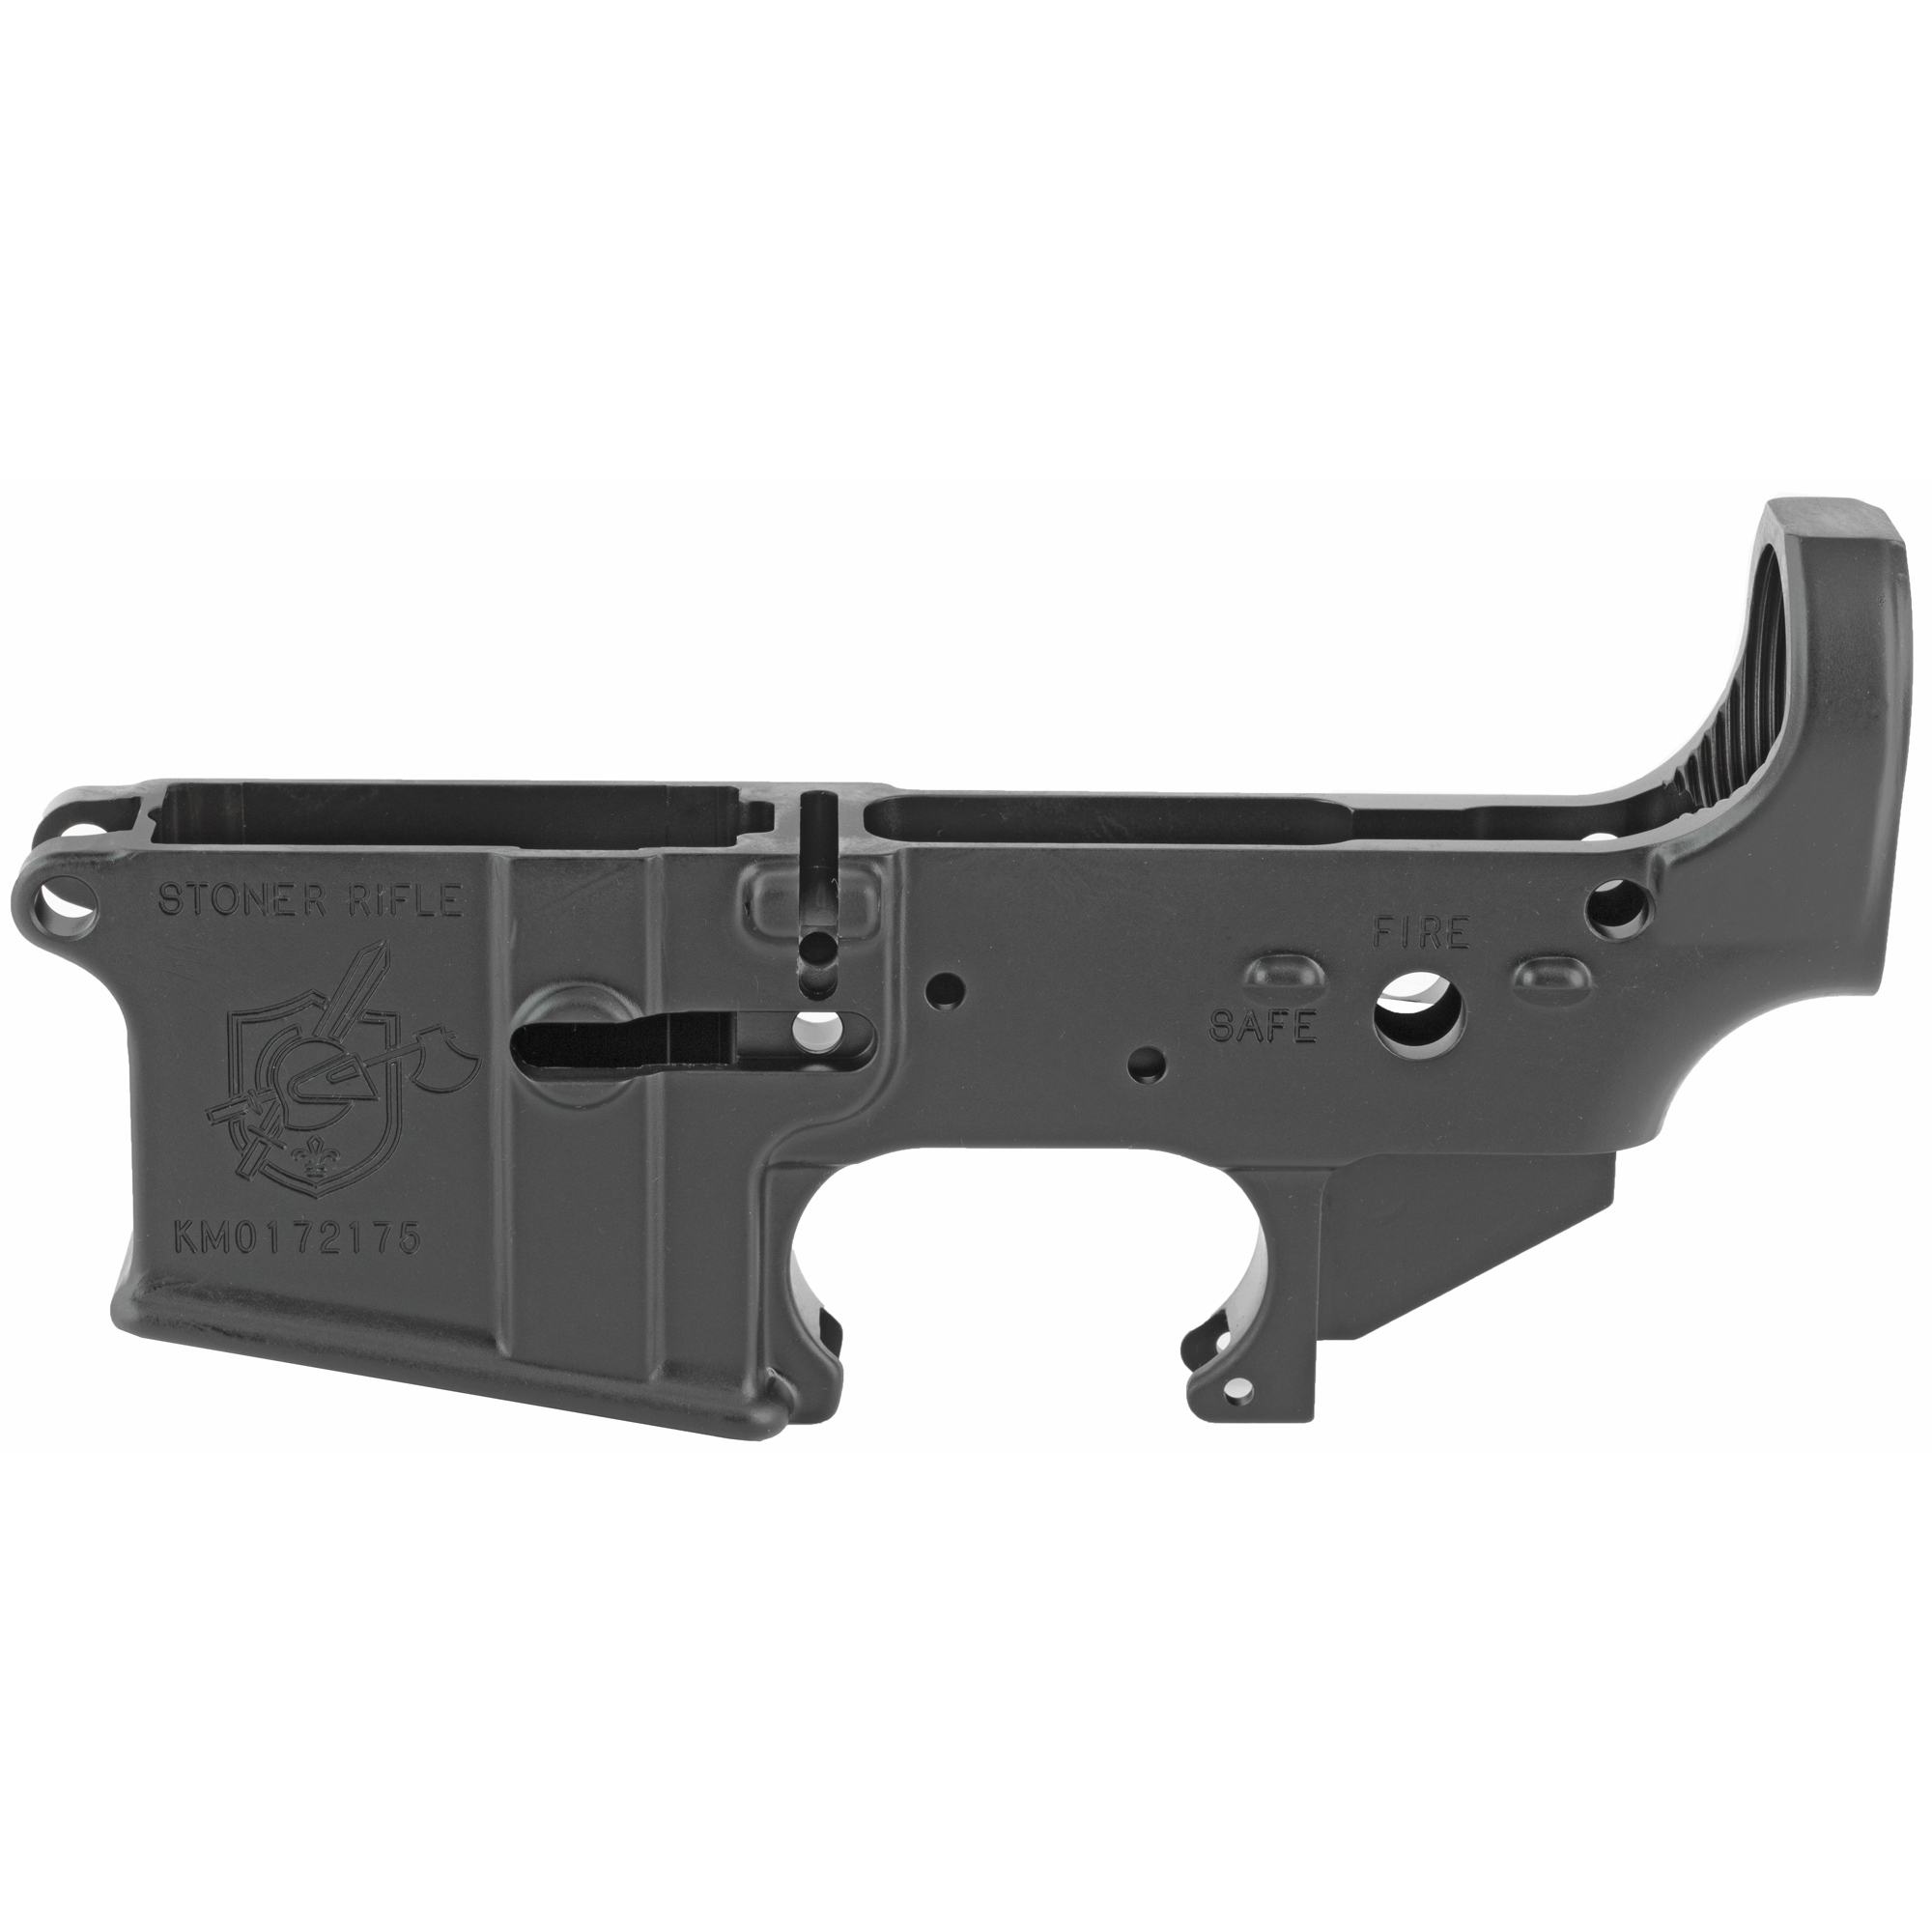 The Knight's Armament SR-15 Stripped Lower Receiver is designed to accept standard mil-spec lower parts kits. The lower is machined from battle-proven 7075-T6 aluminum and is treated with a Type 3 hard-anodized finish.